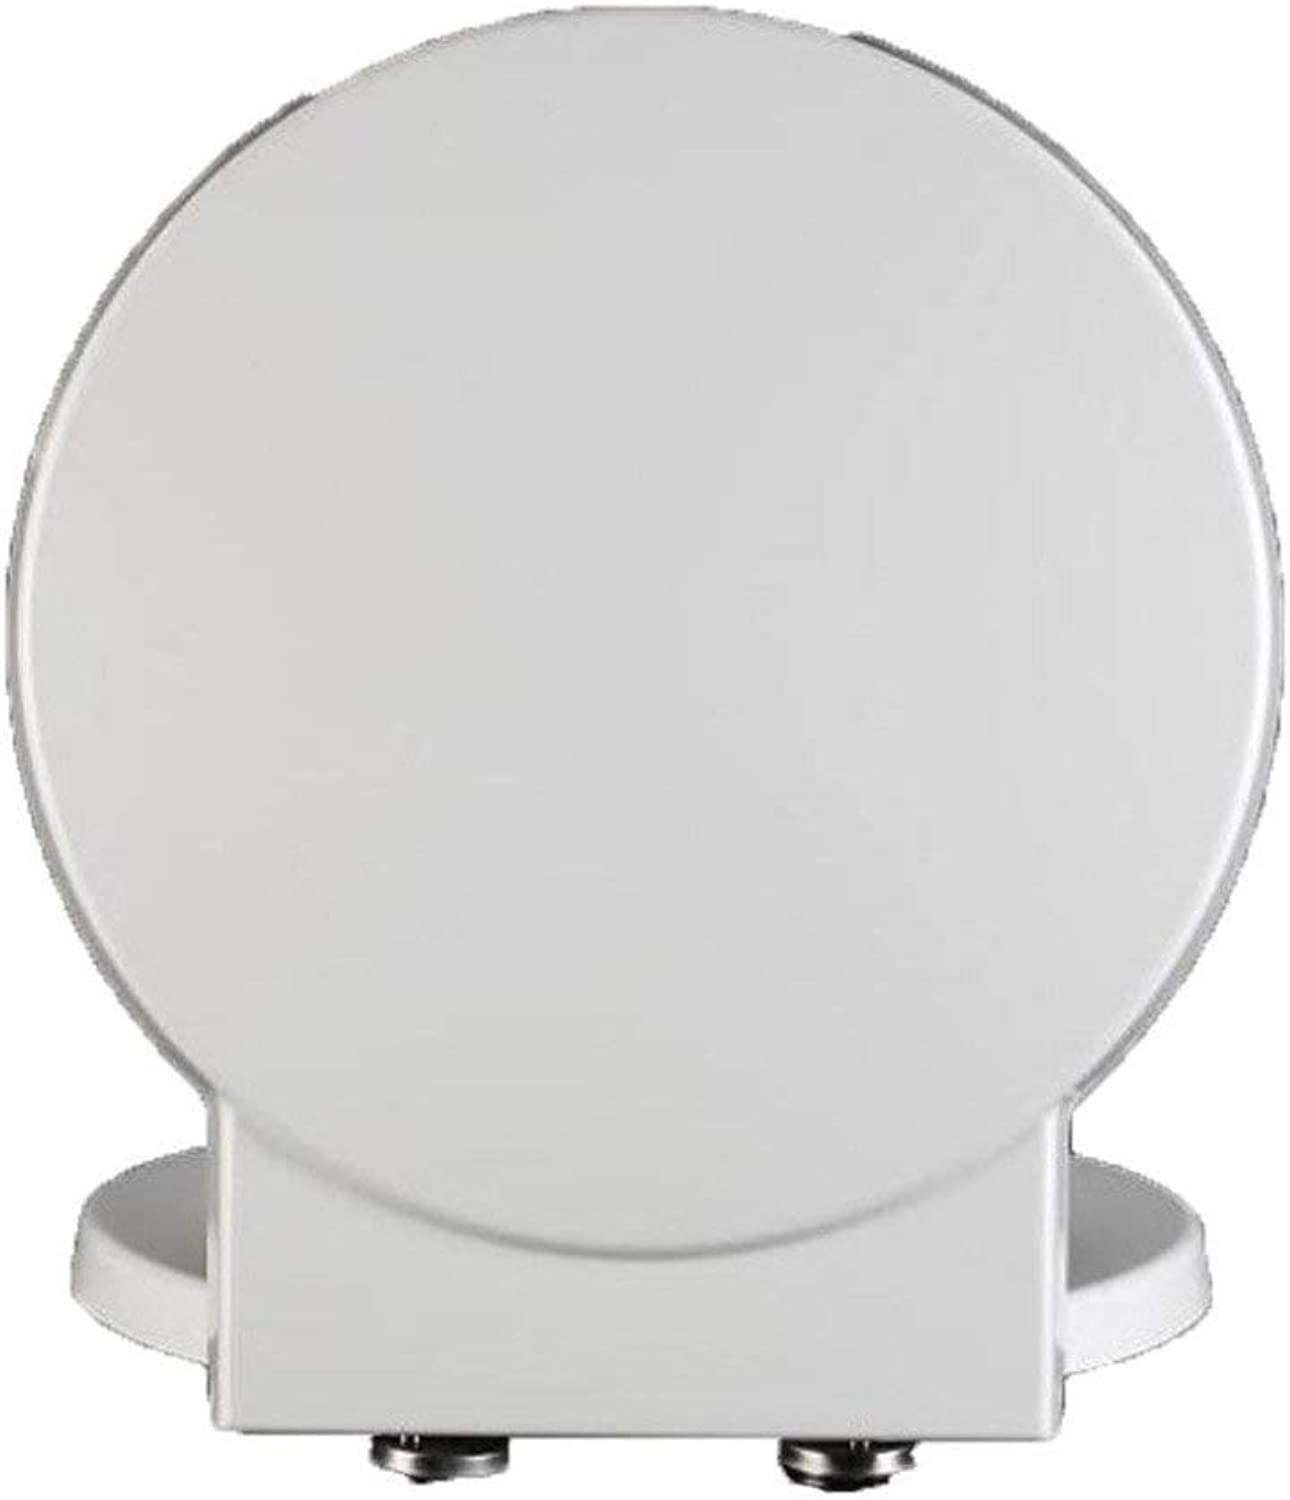 Toilet Seat Toilet Seat Toilet Lid With Antibacterial Urea-formaldehyde Resin Mute Thicken Toilet Seat Cover For Round Shape Toilet Anti-Bacterial Toilet Seat (color   White, Size   41.1-45.7  40CM)